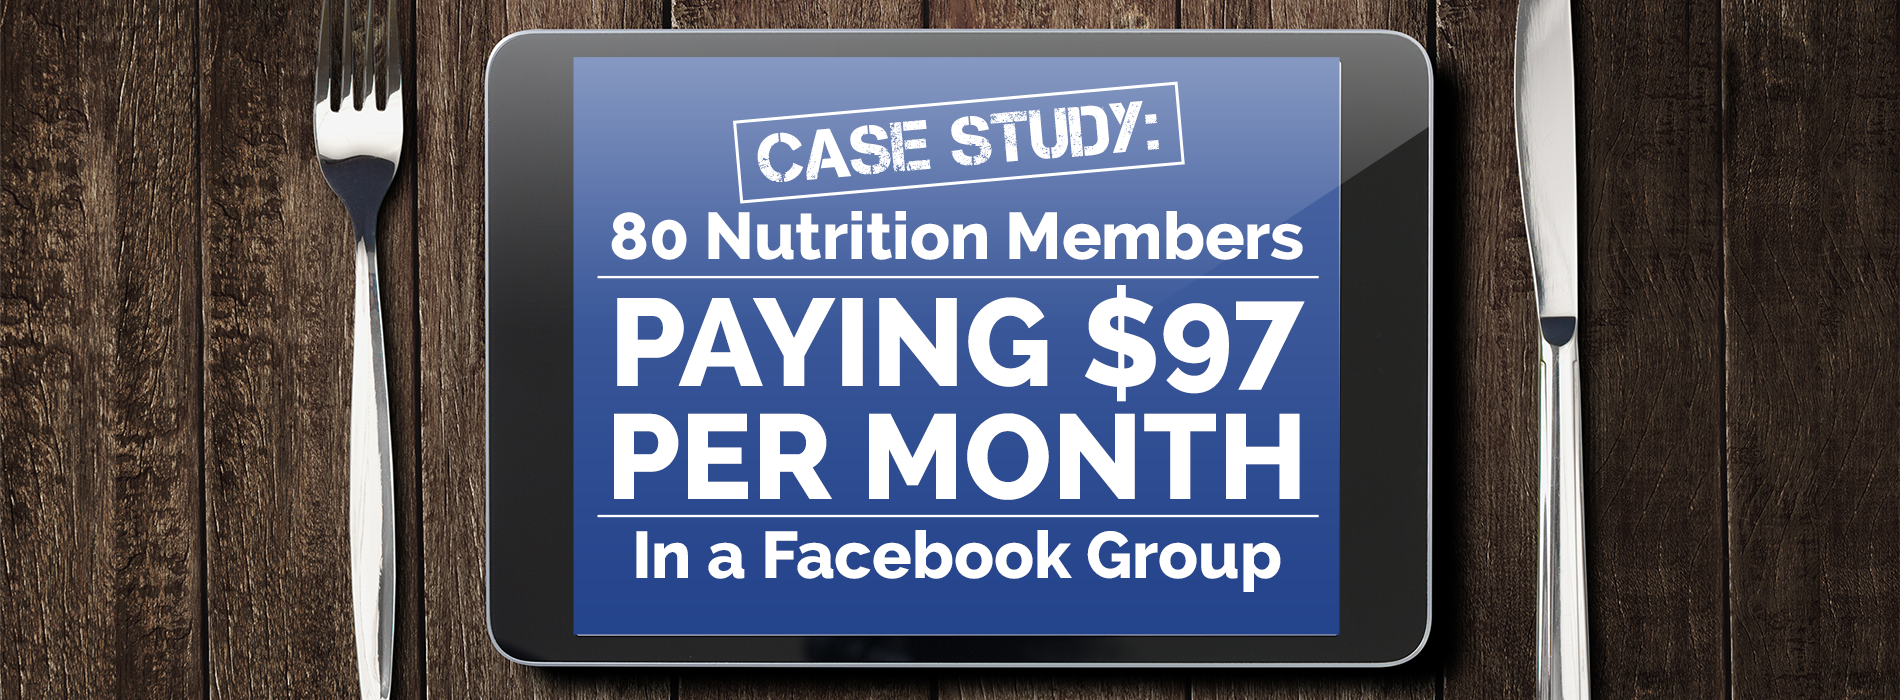 Nutrition Members Paying $97 Per Month In a Facebook Group